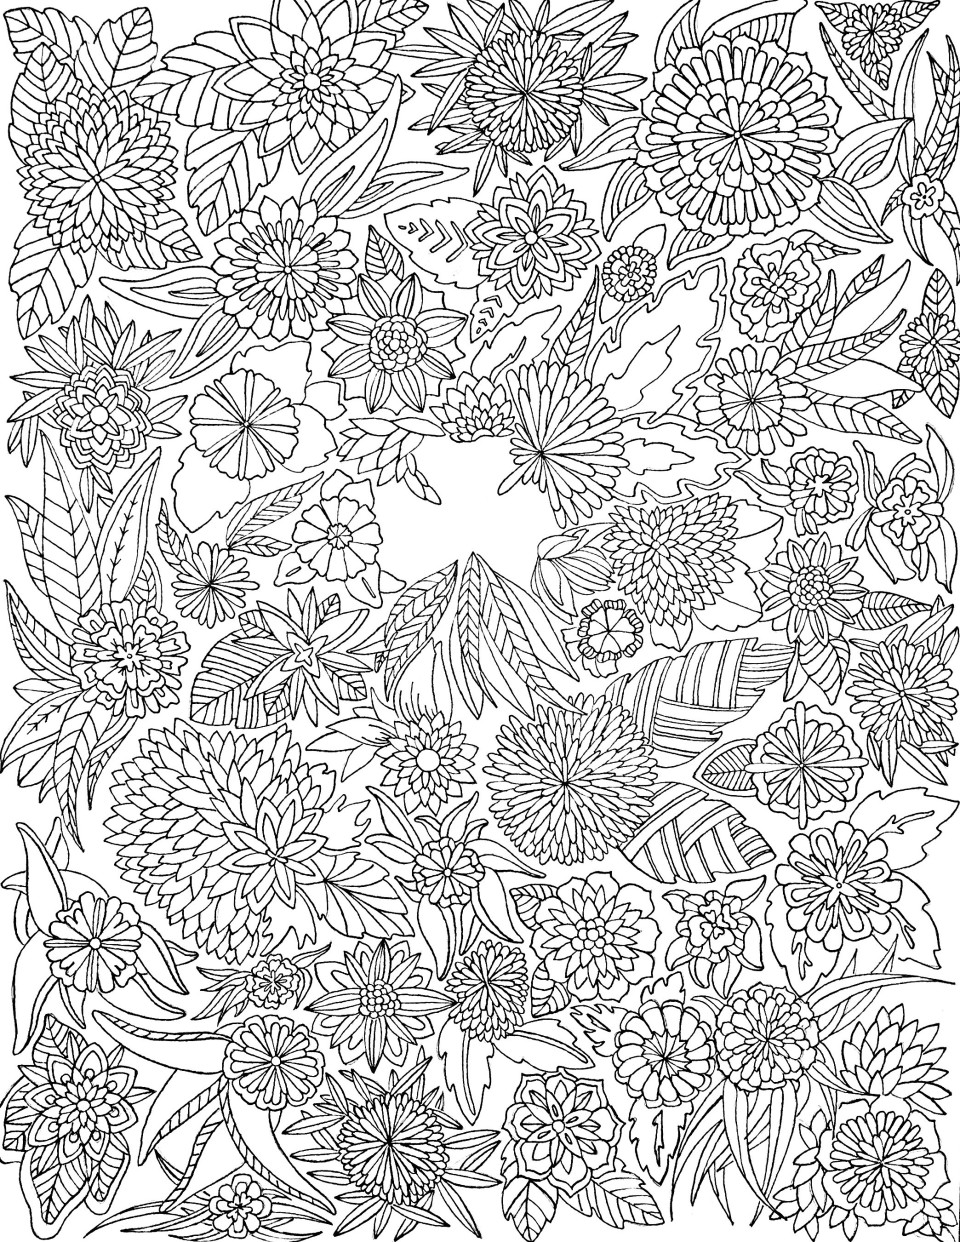 March coloring - Twineandtable